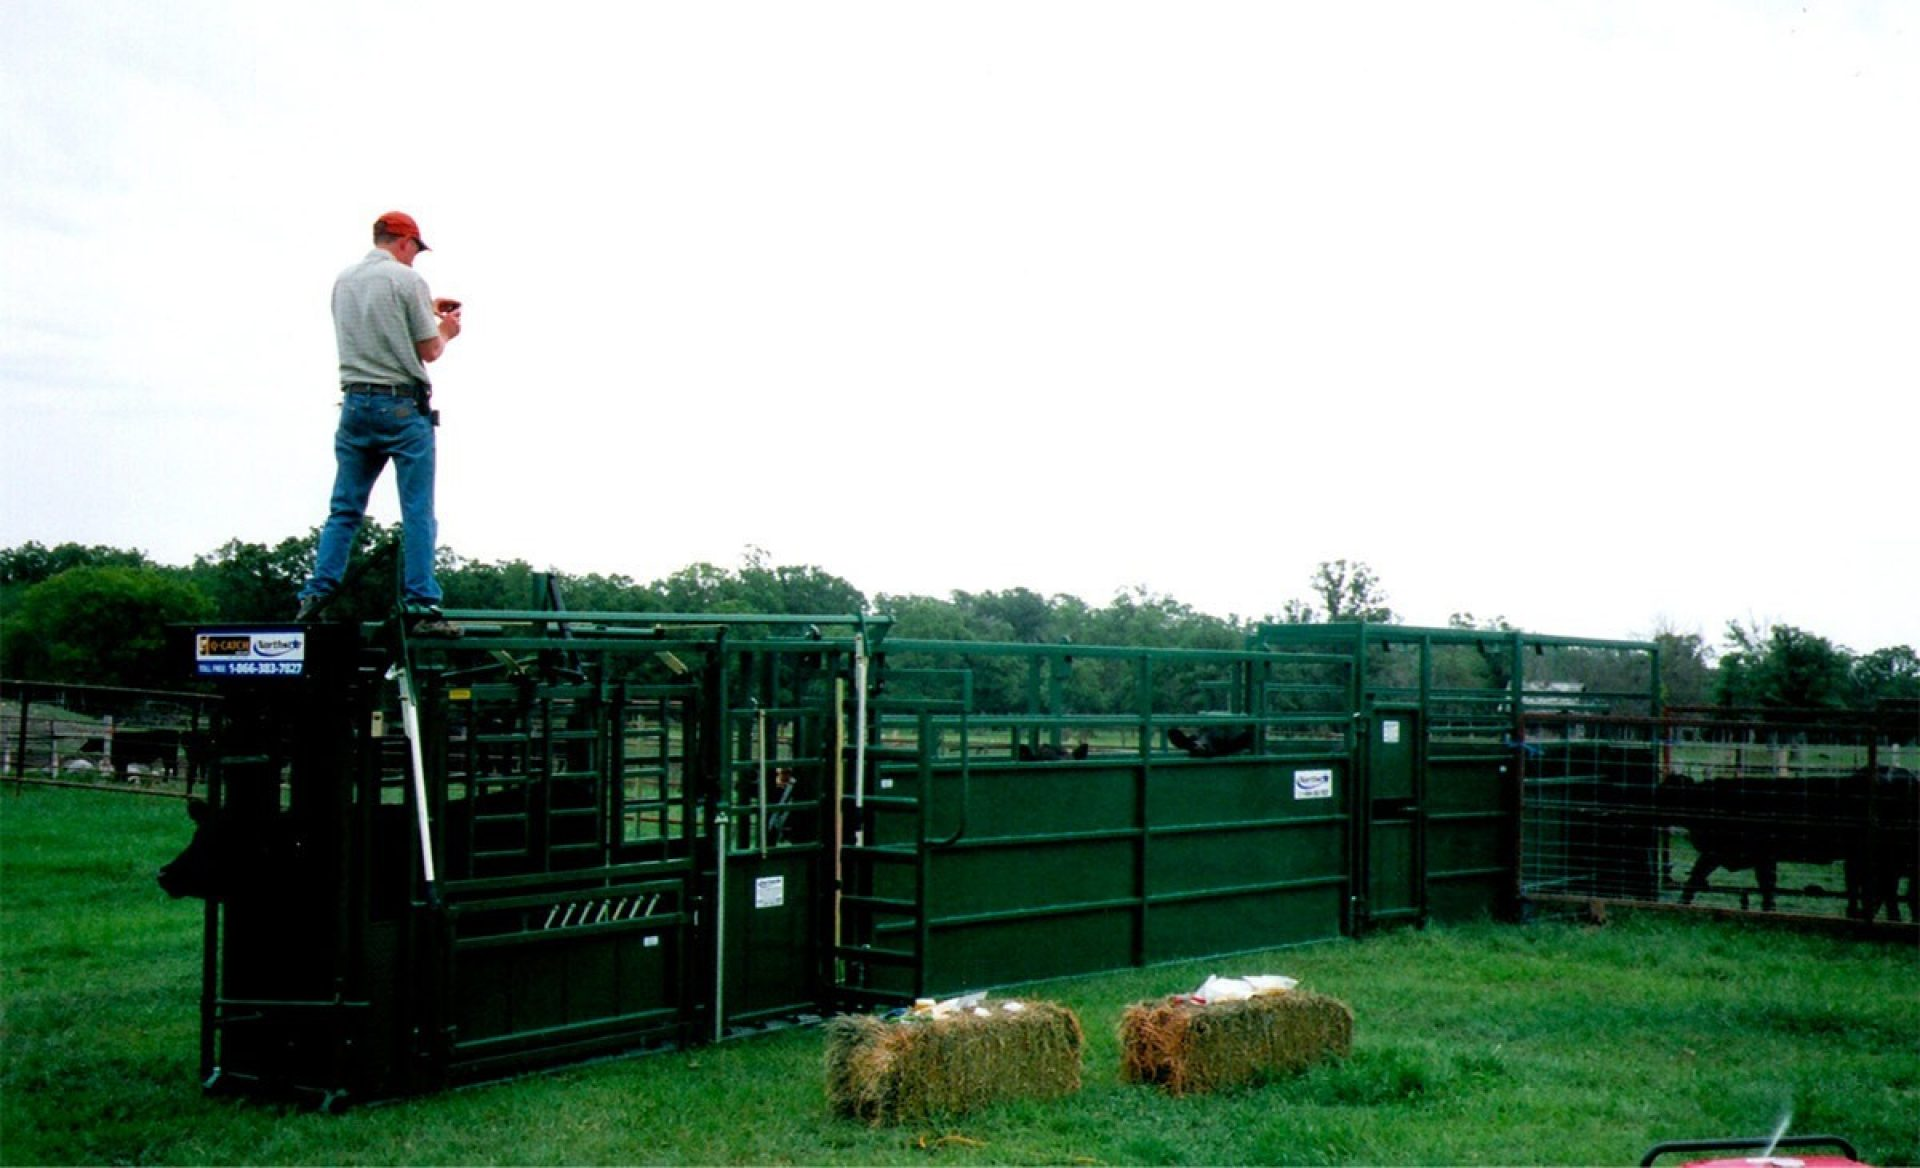 Man standing on top of old Arrowquip cattle chute